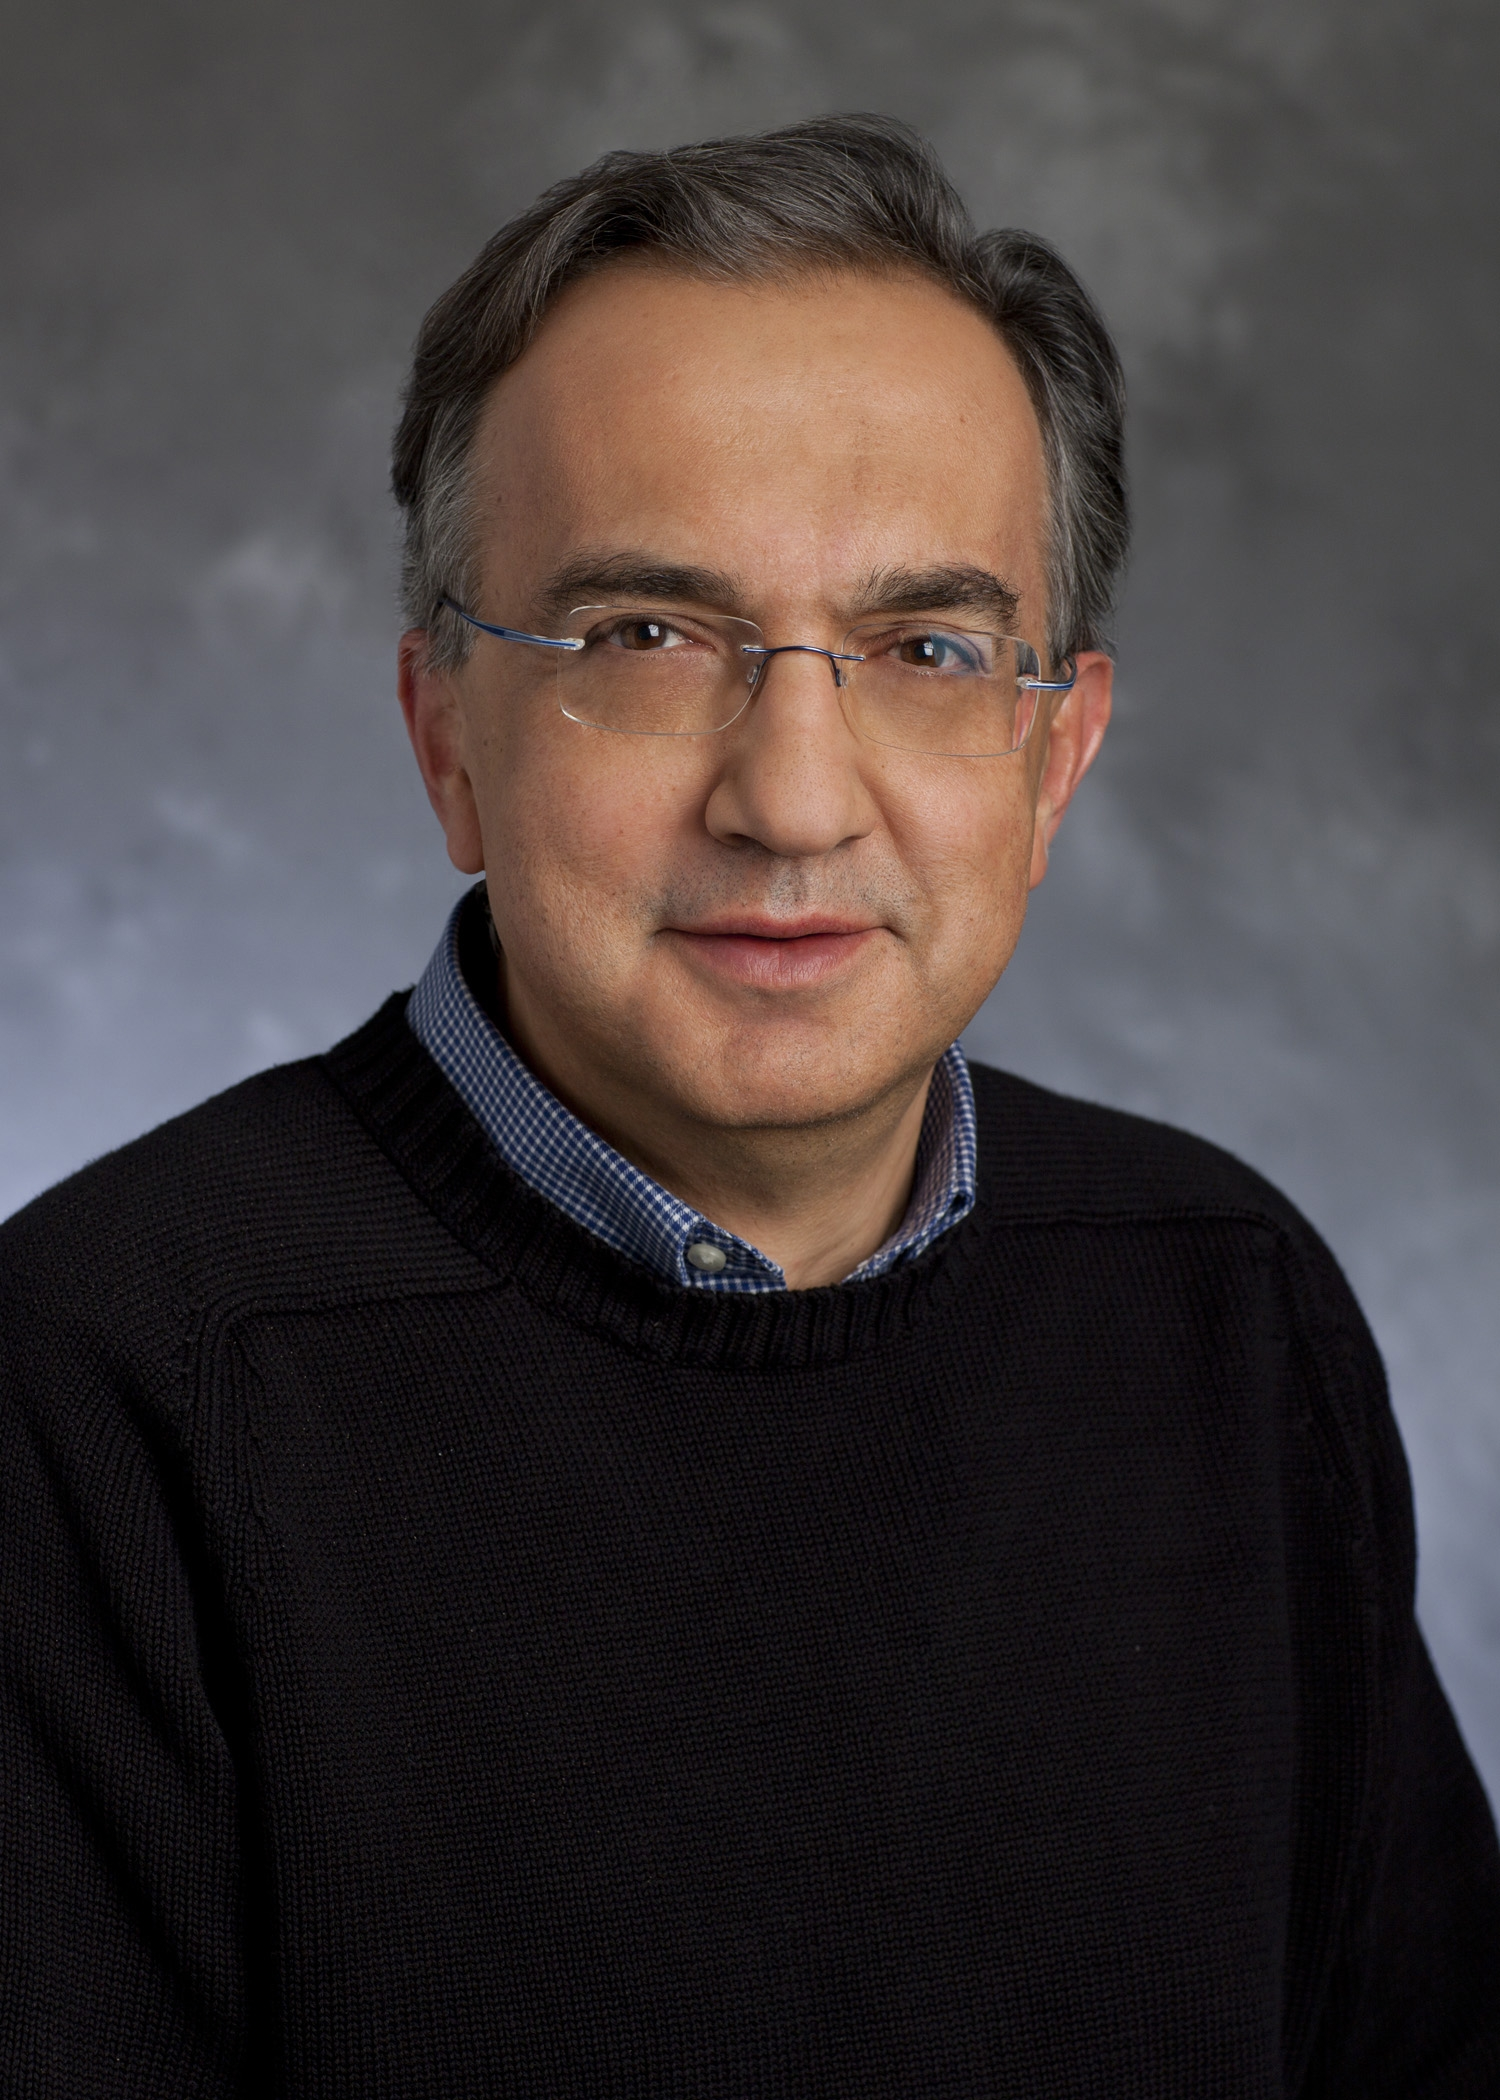 Fca S Marchionne Named Sae Foundation S 2015 Industry